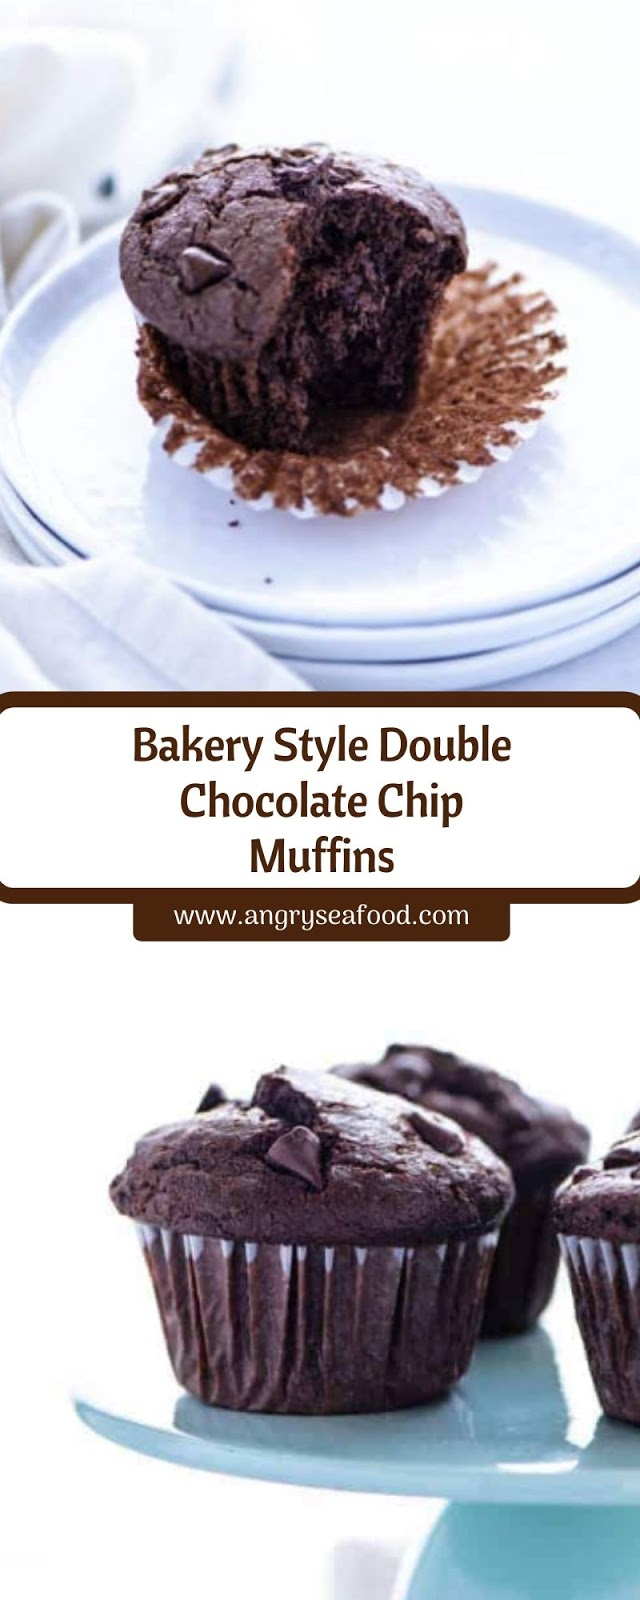 Bakery Style Double Chocolate Chip Muffins